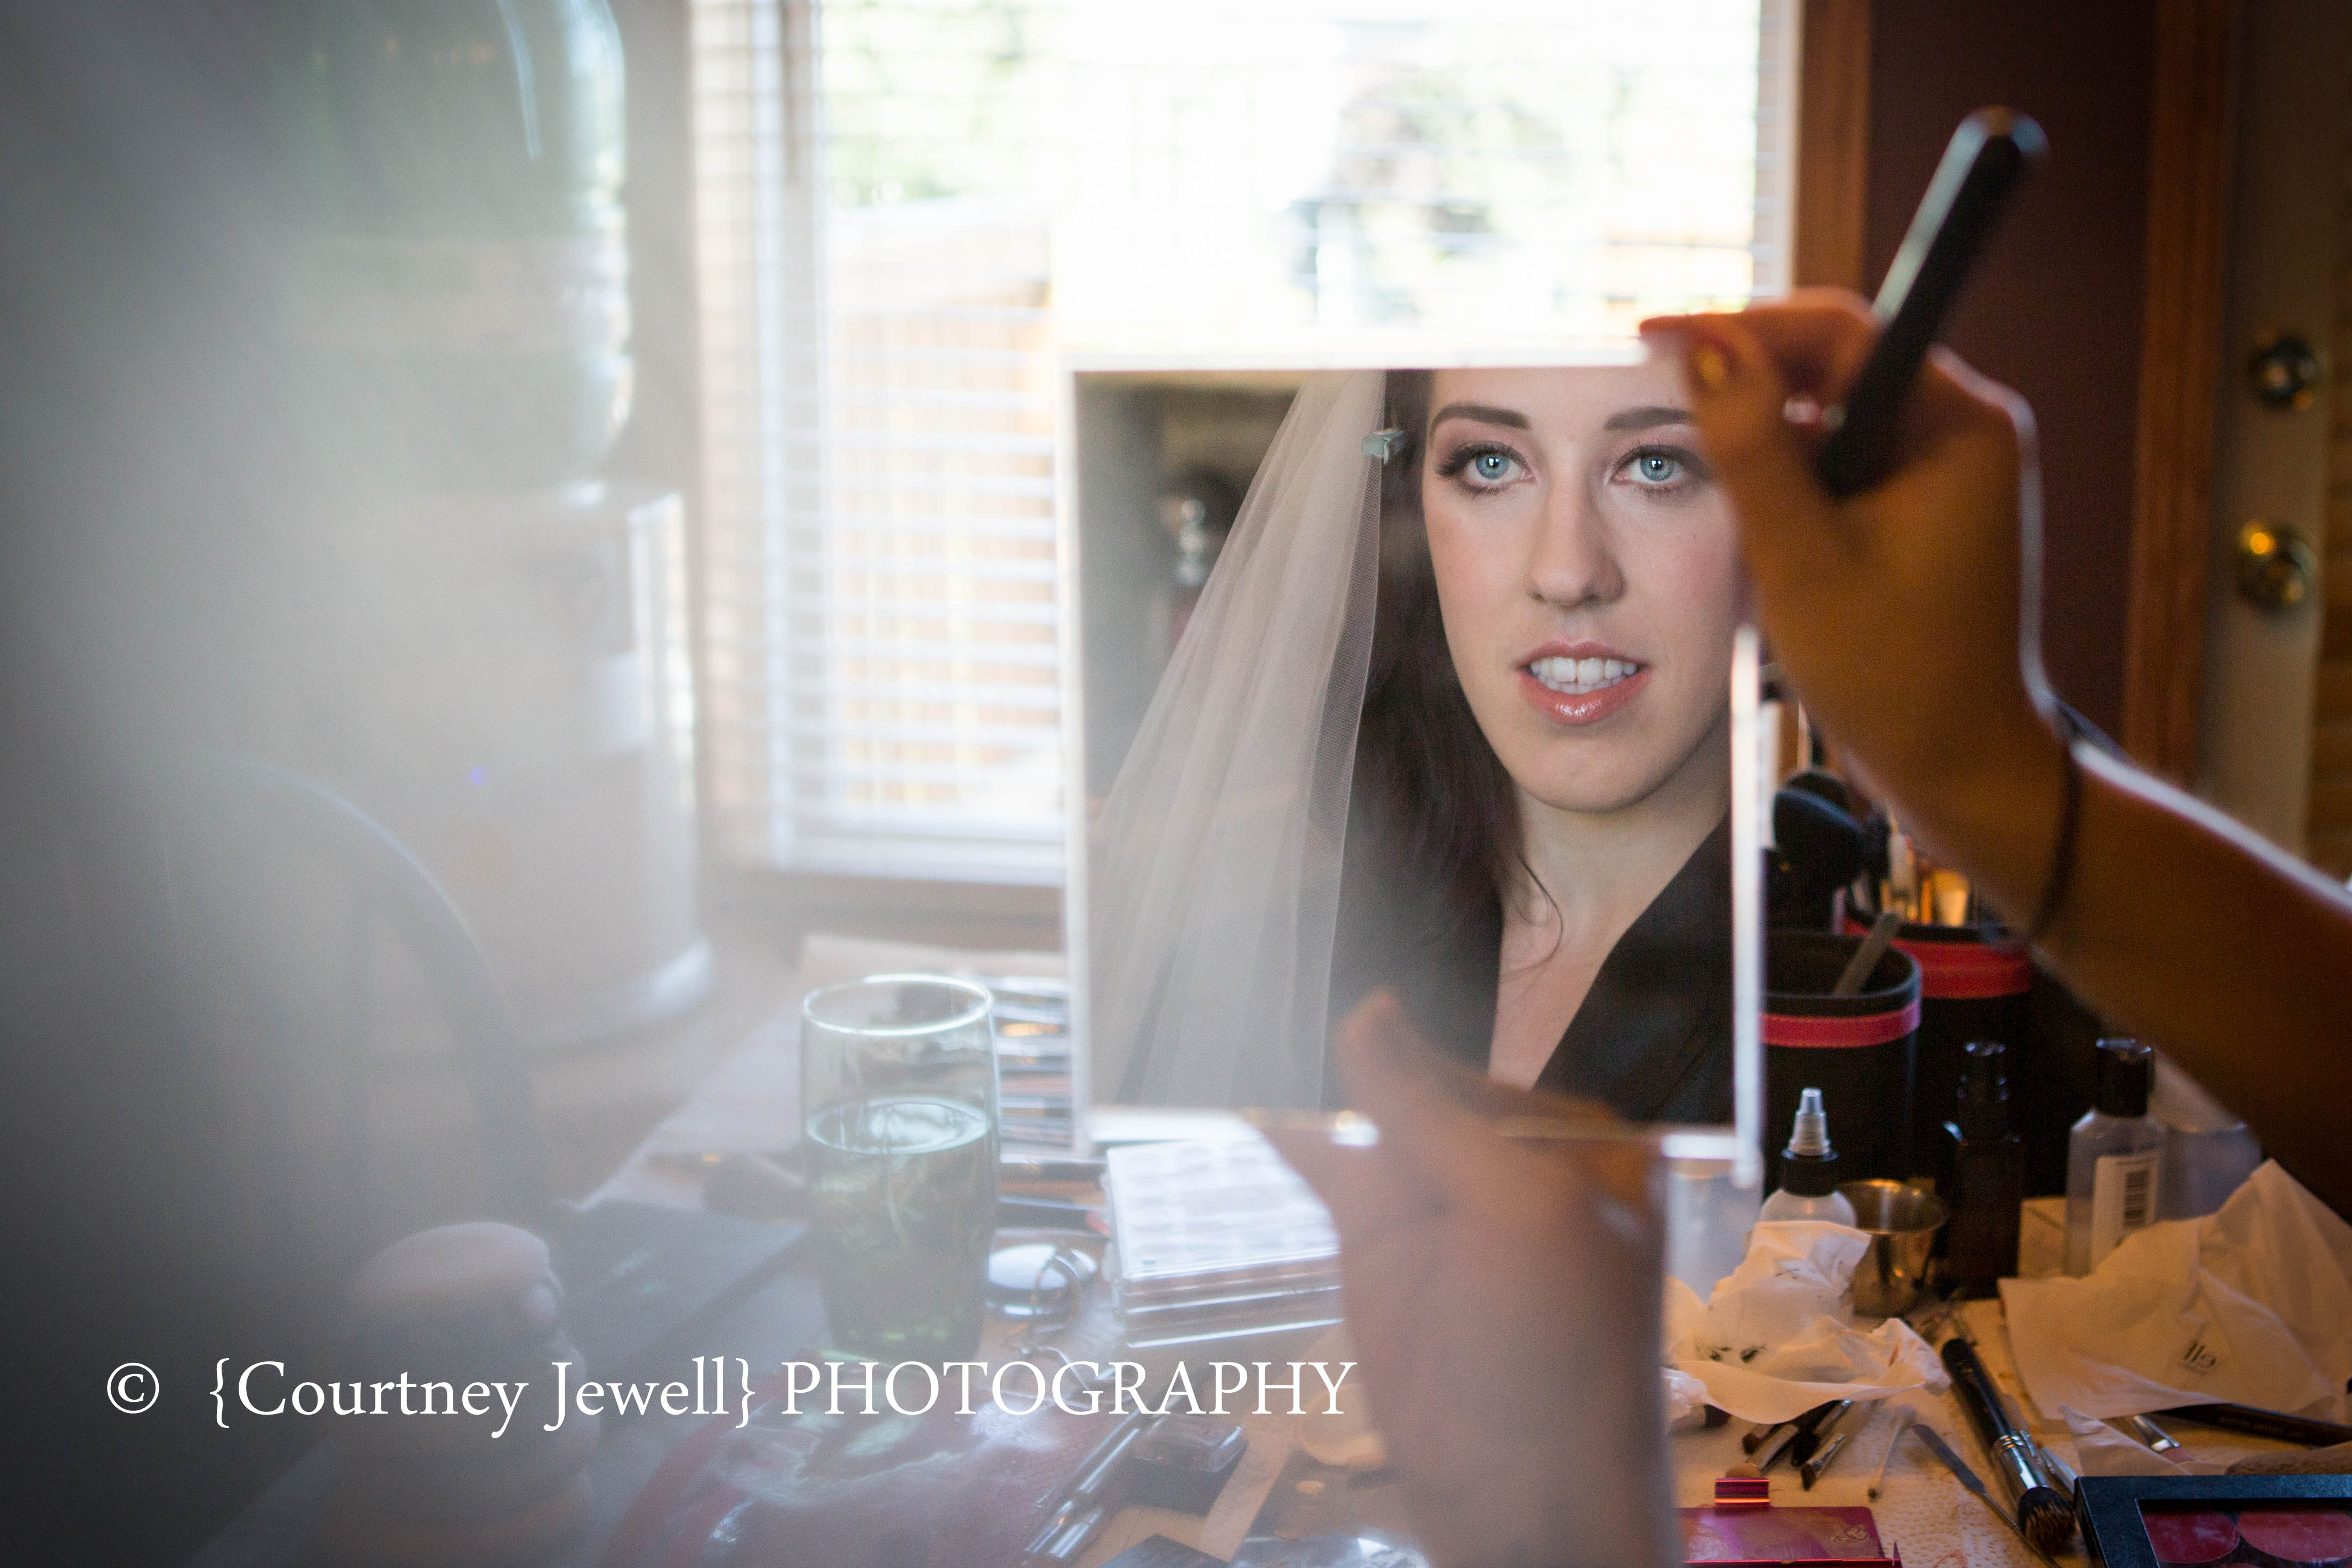 Courtney Jewell Photography